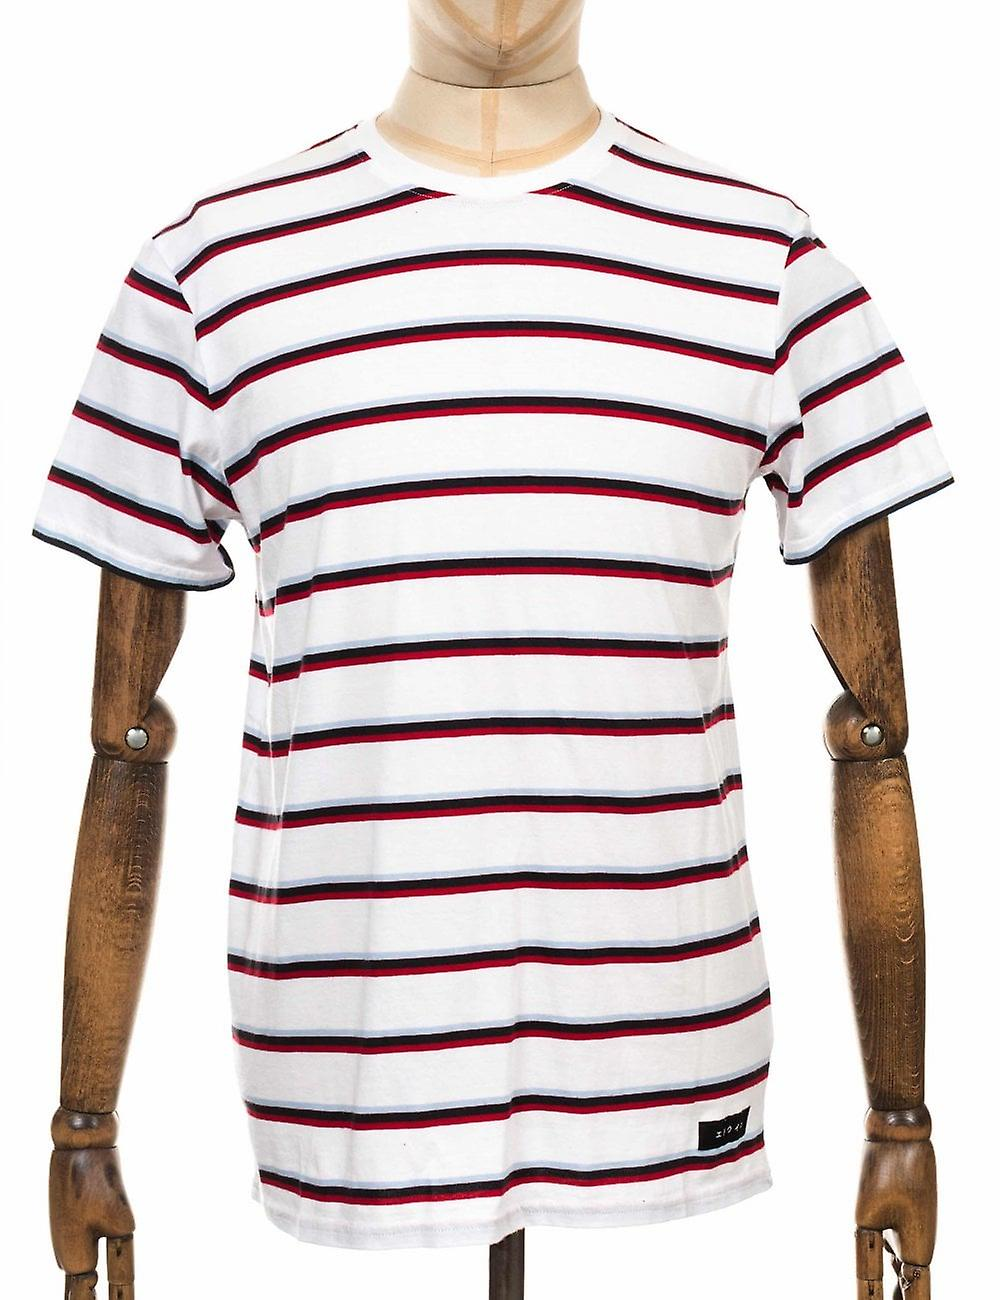 Edwin Jeans West Stripe Tee - White